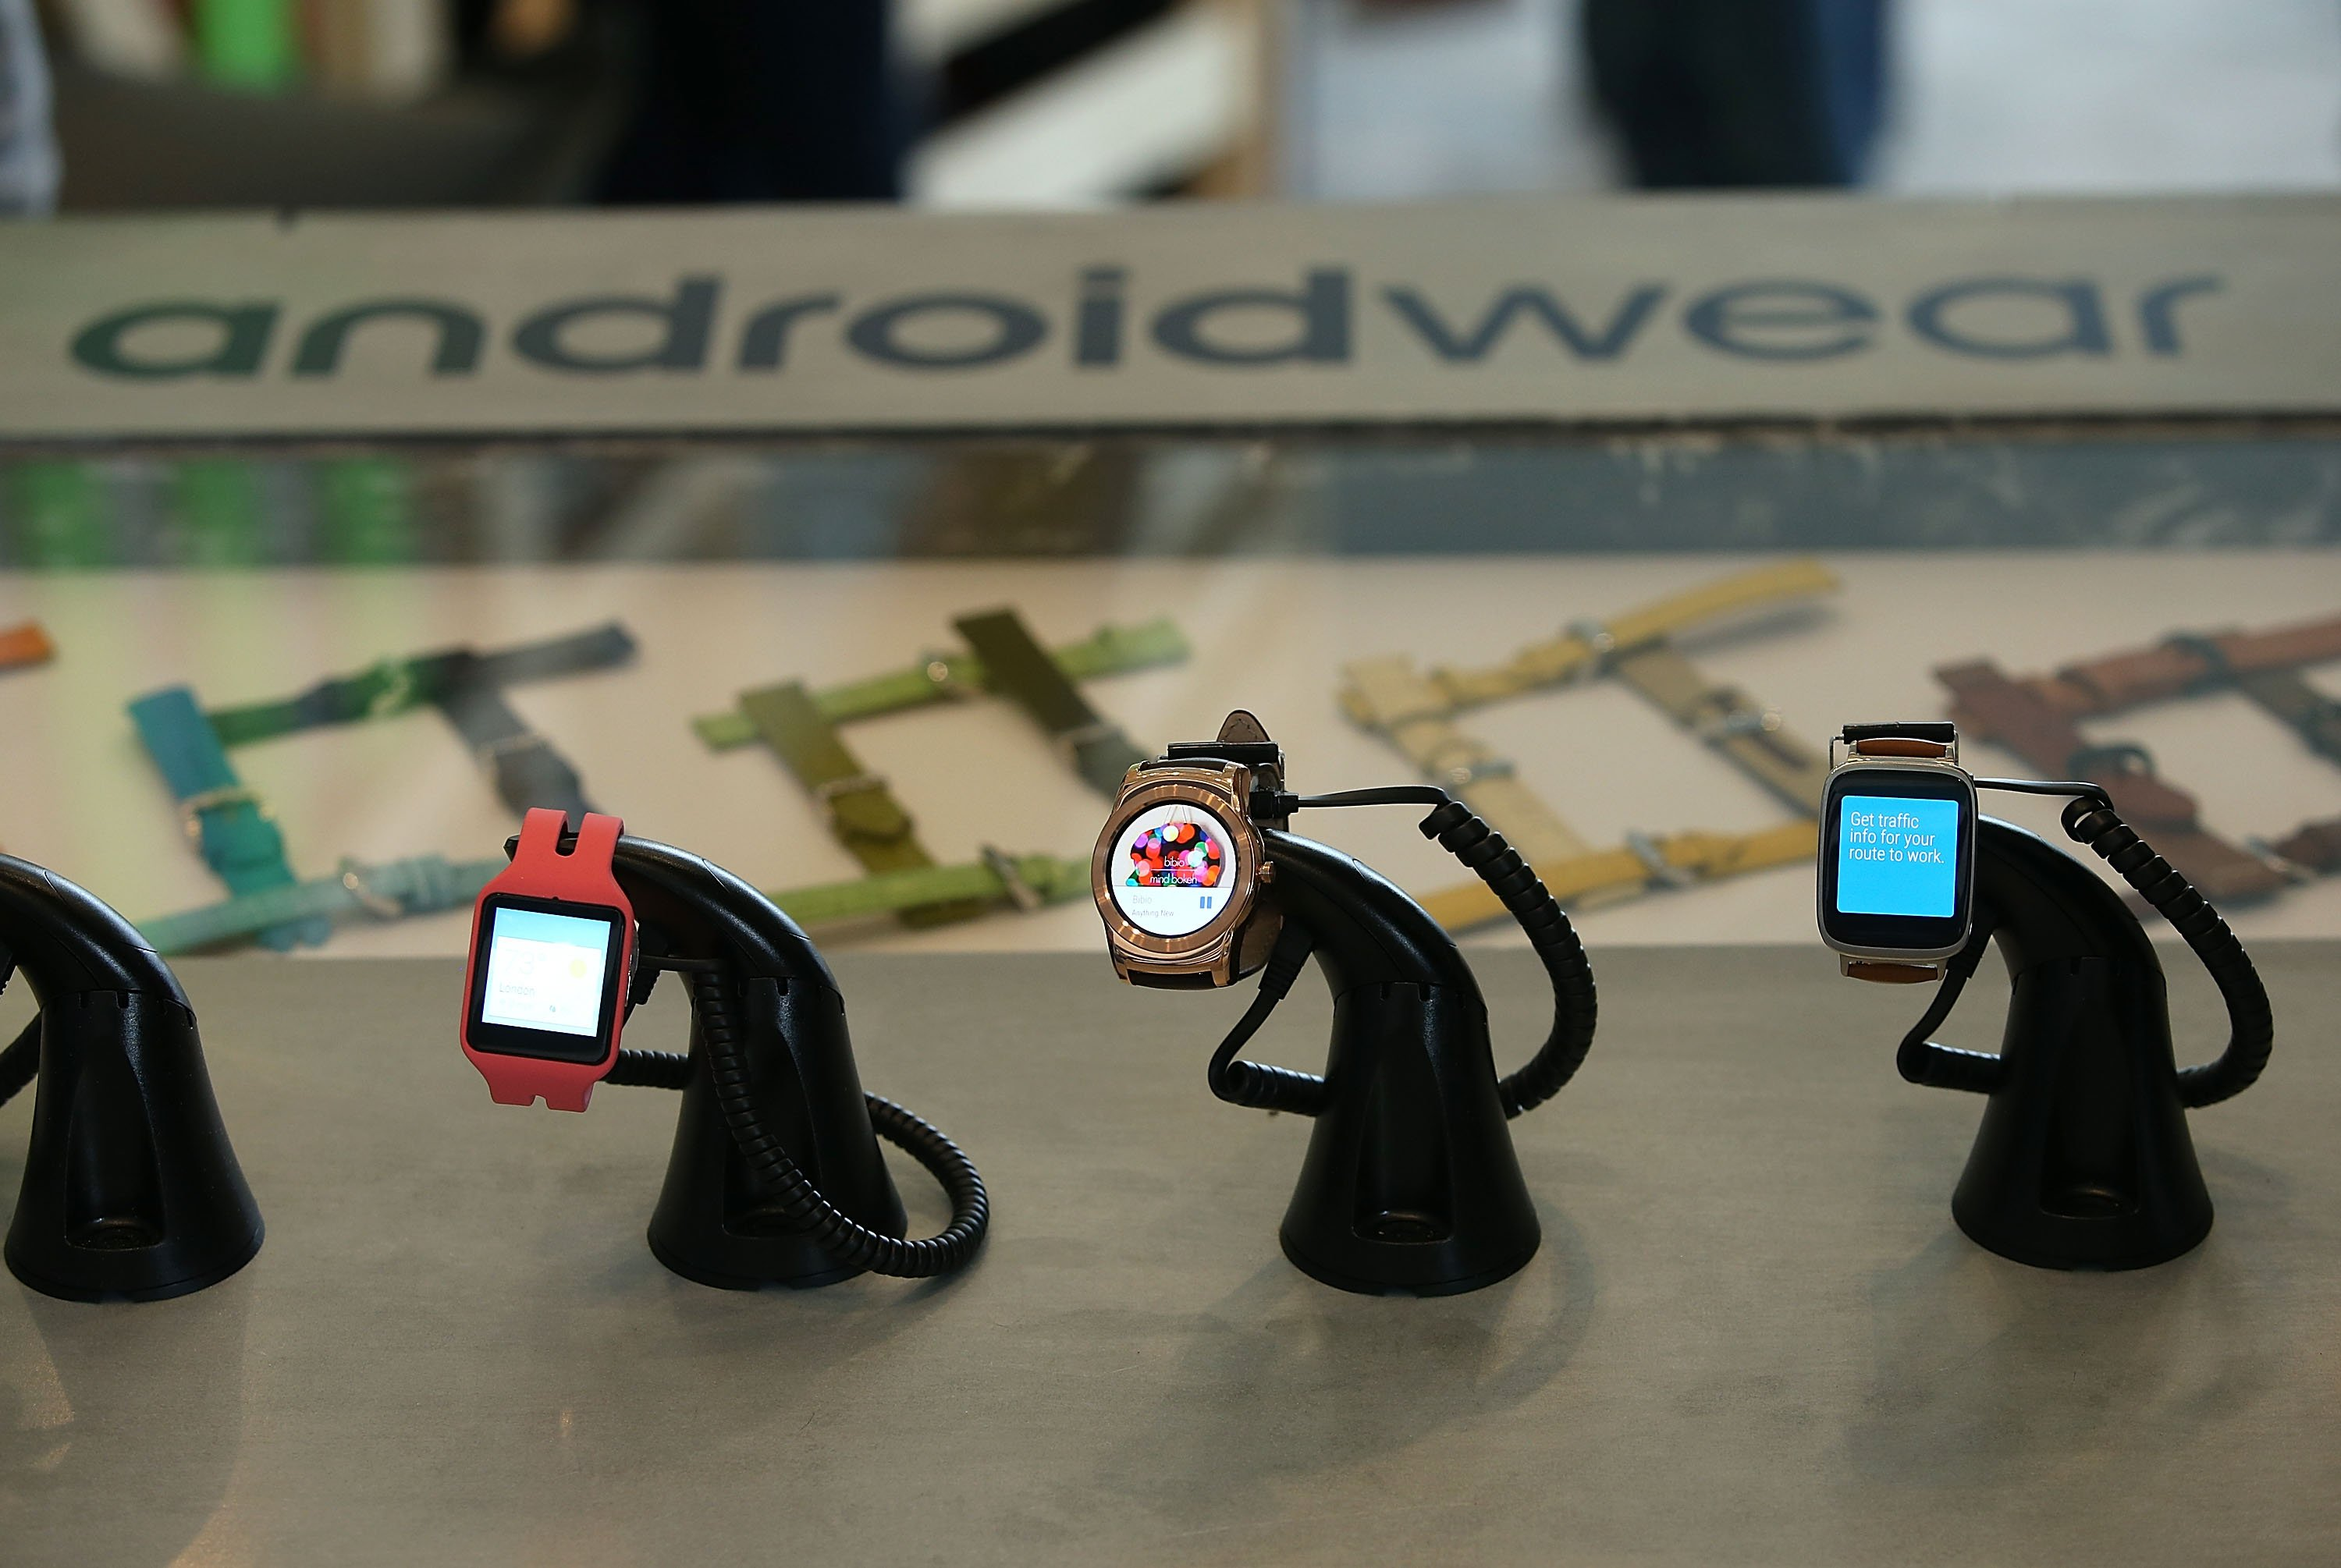 Google said during its I/O conference there are now seven Android Wear smart watches available. New features unveiled include new wrist gestures and a low-power black and white mode.